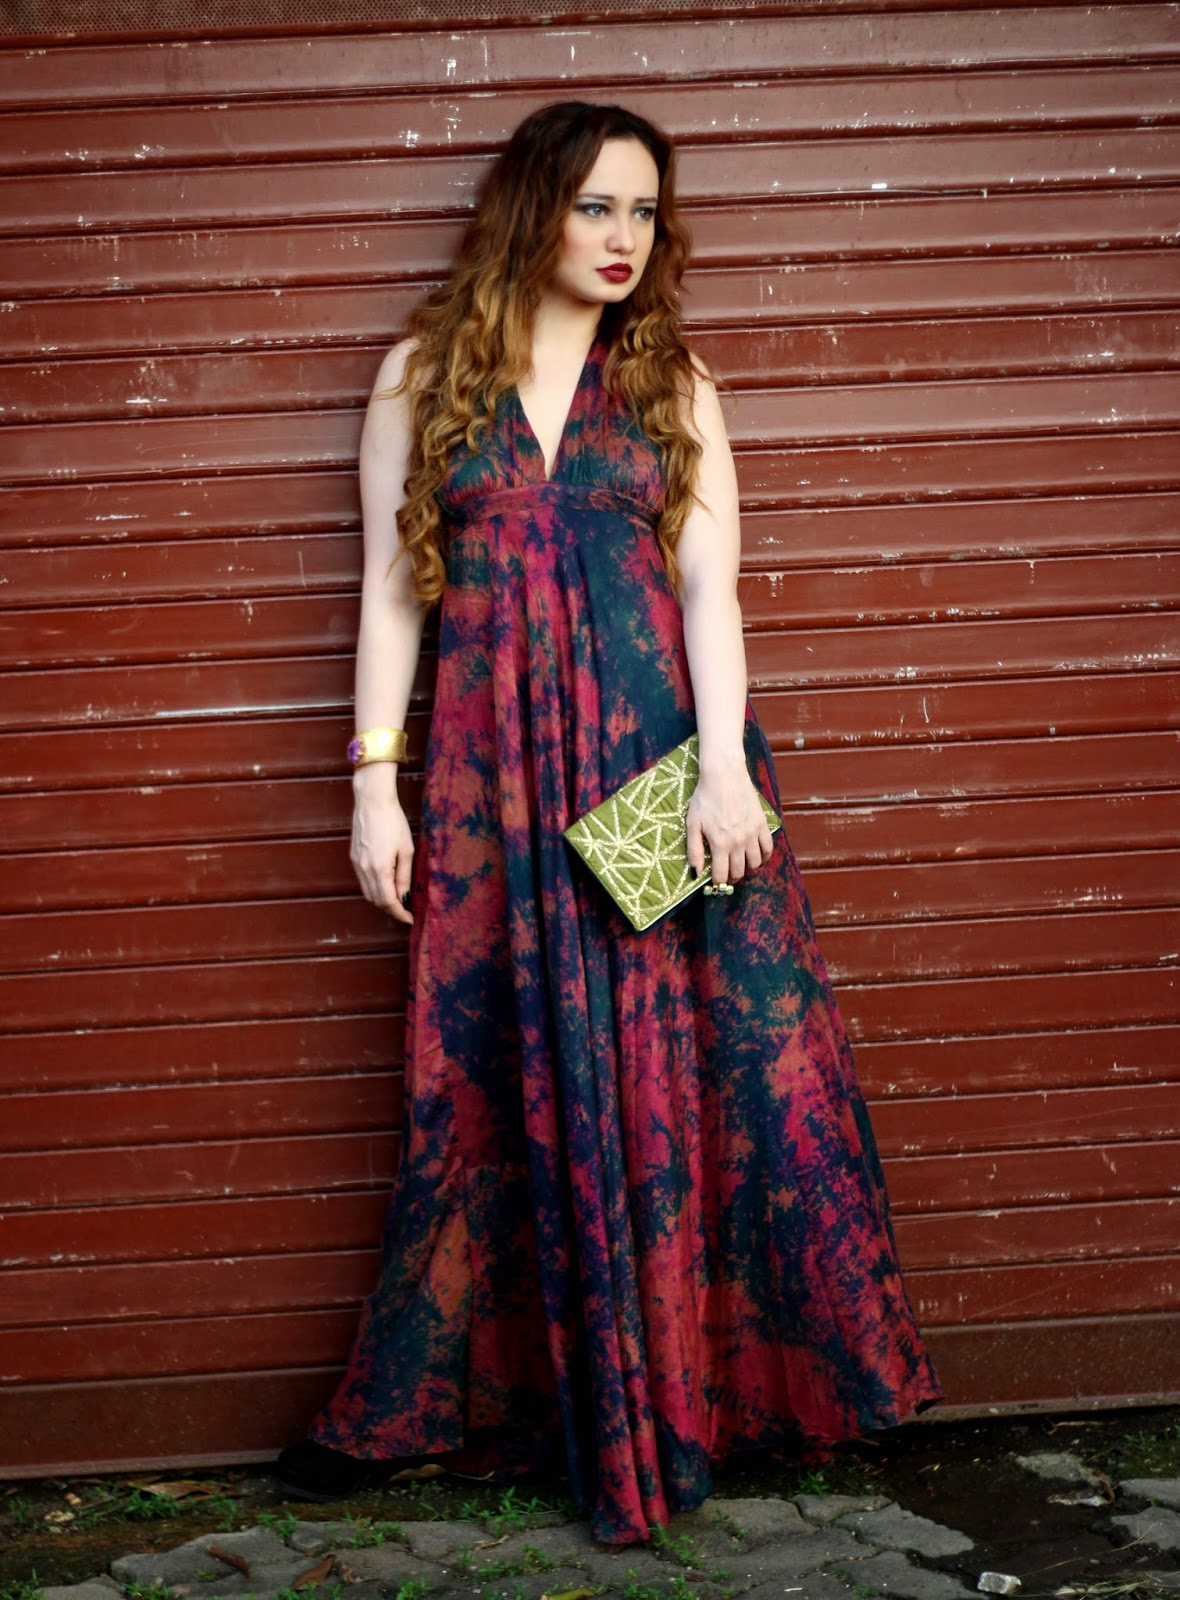 Batik Silk Maxi Dress, Bordeaux Lips, Embroidered Clutch